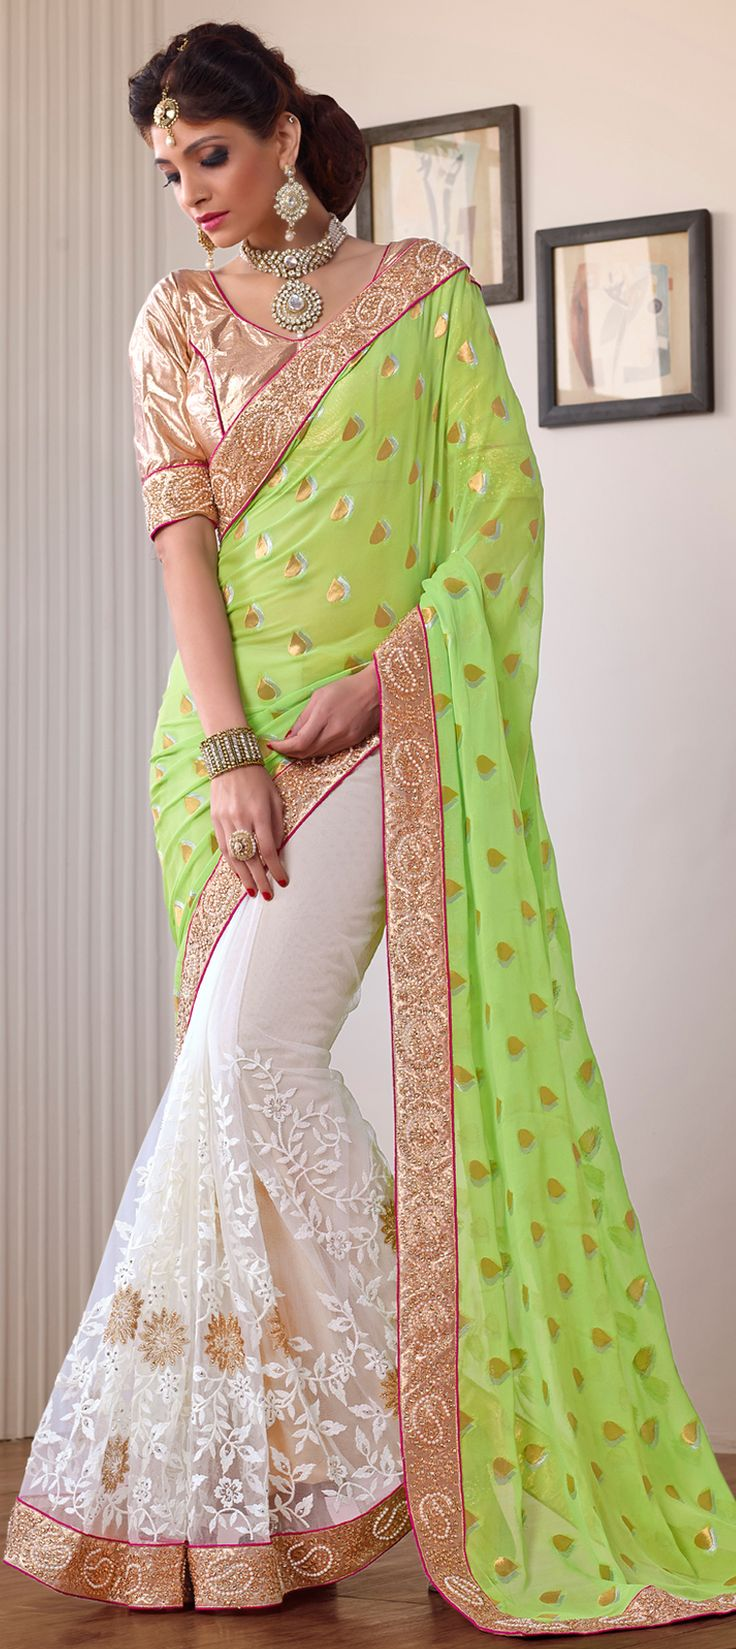 156797: #Neon is one of the best things for #Springsummer. Have a look. Order at flat 15% off+ free shipping worldwide #saree #partywear #indianwedding #indianfashion #sari #onlineshopping